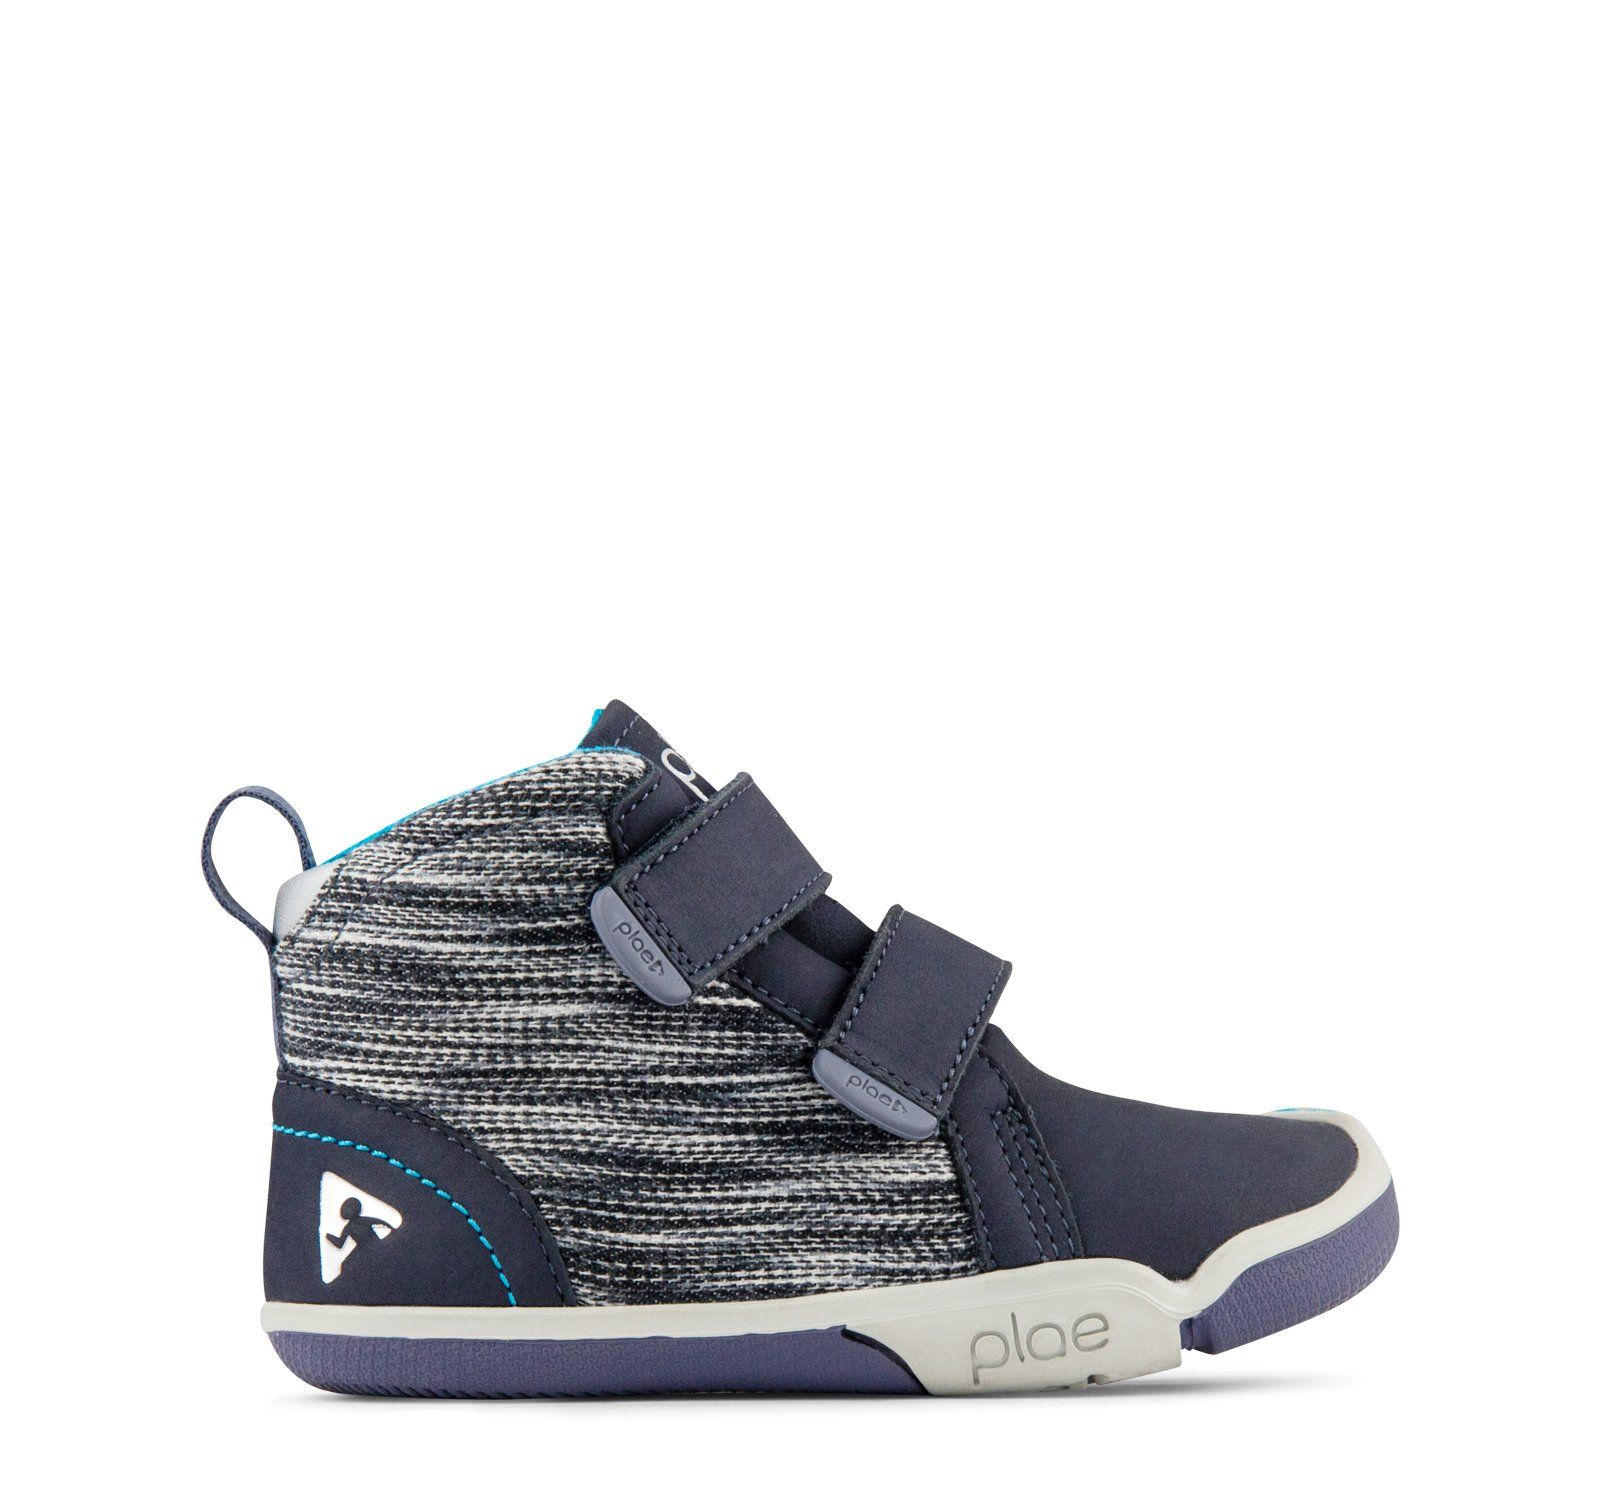 Plae Max Leather High Top Sneaker